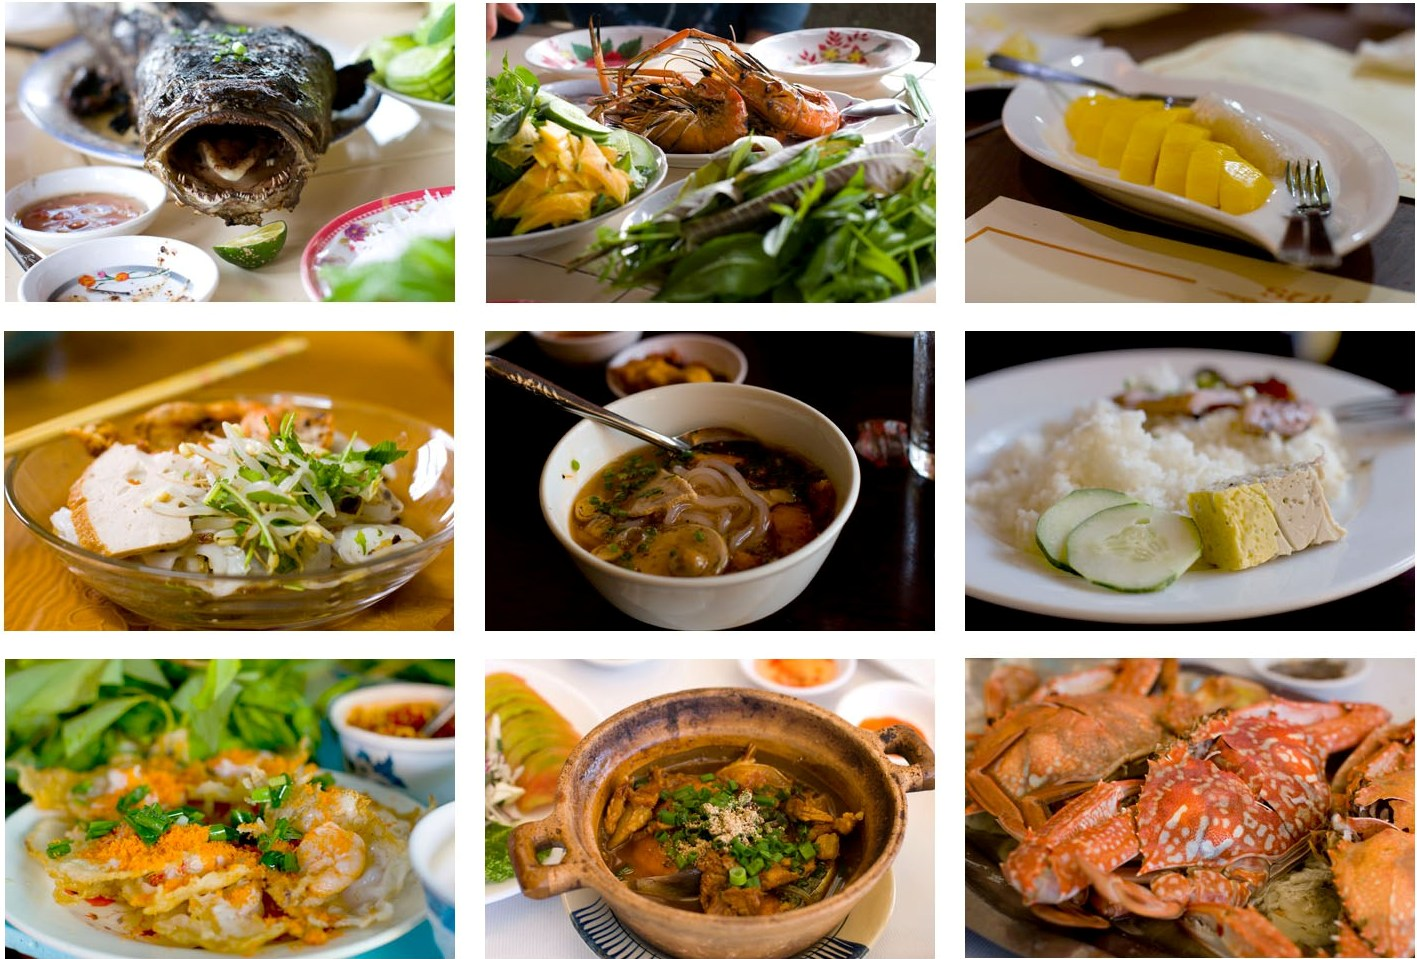 Unit 5: Vietnamese food and drink